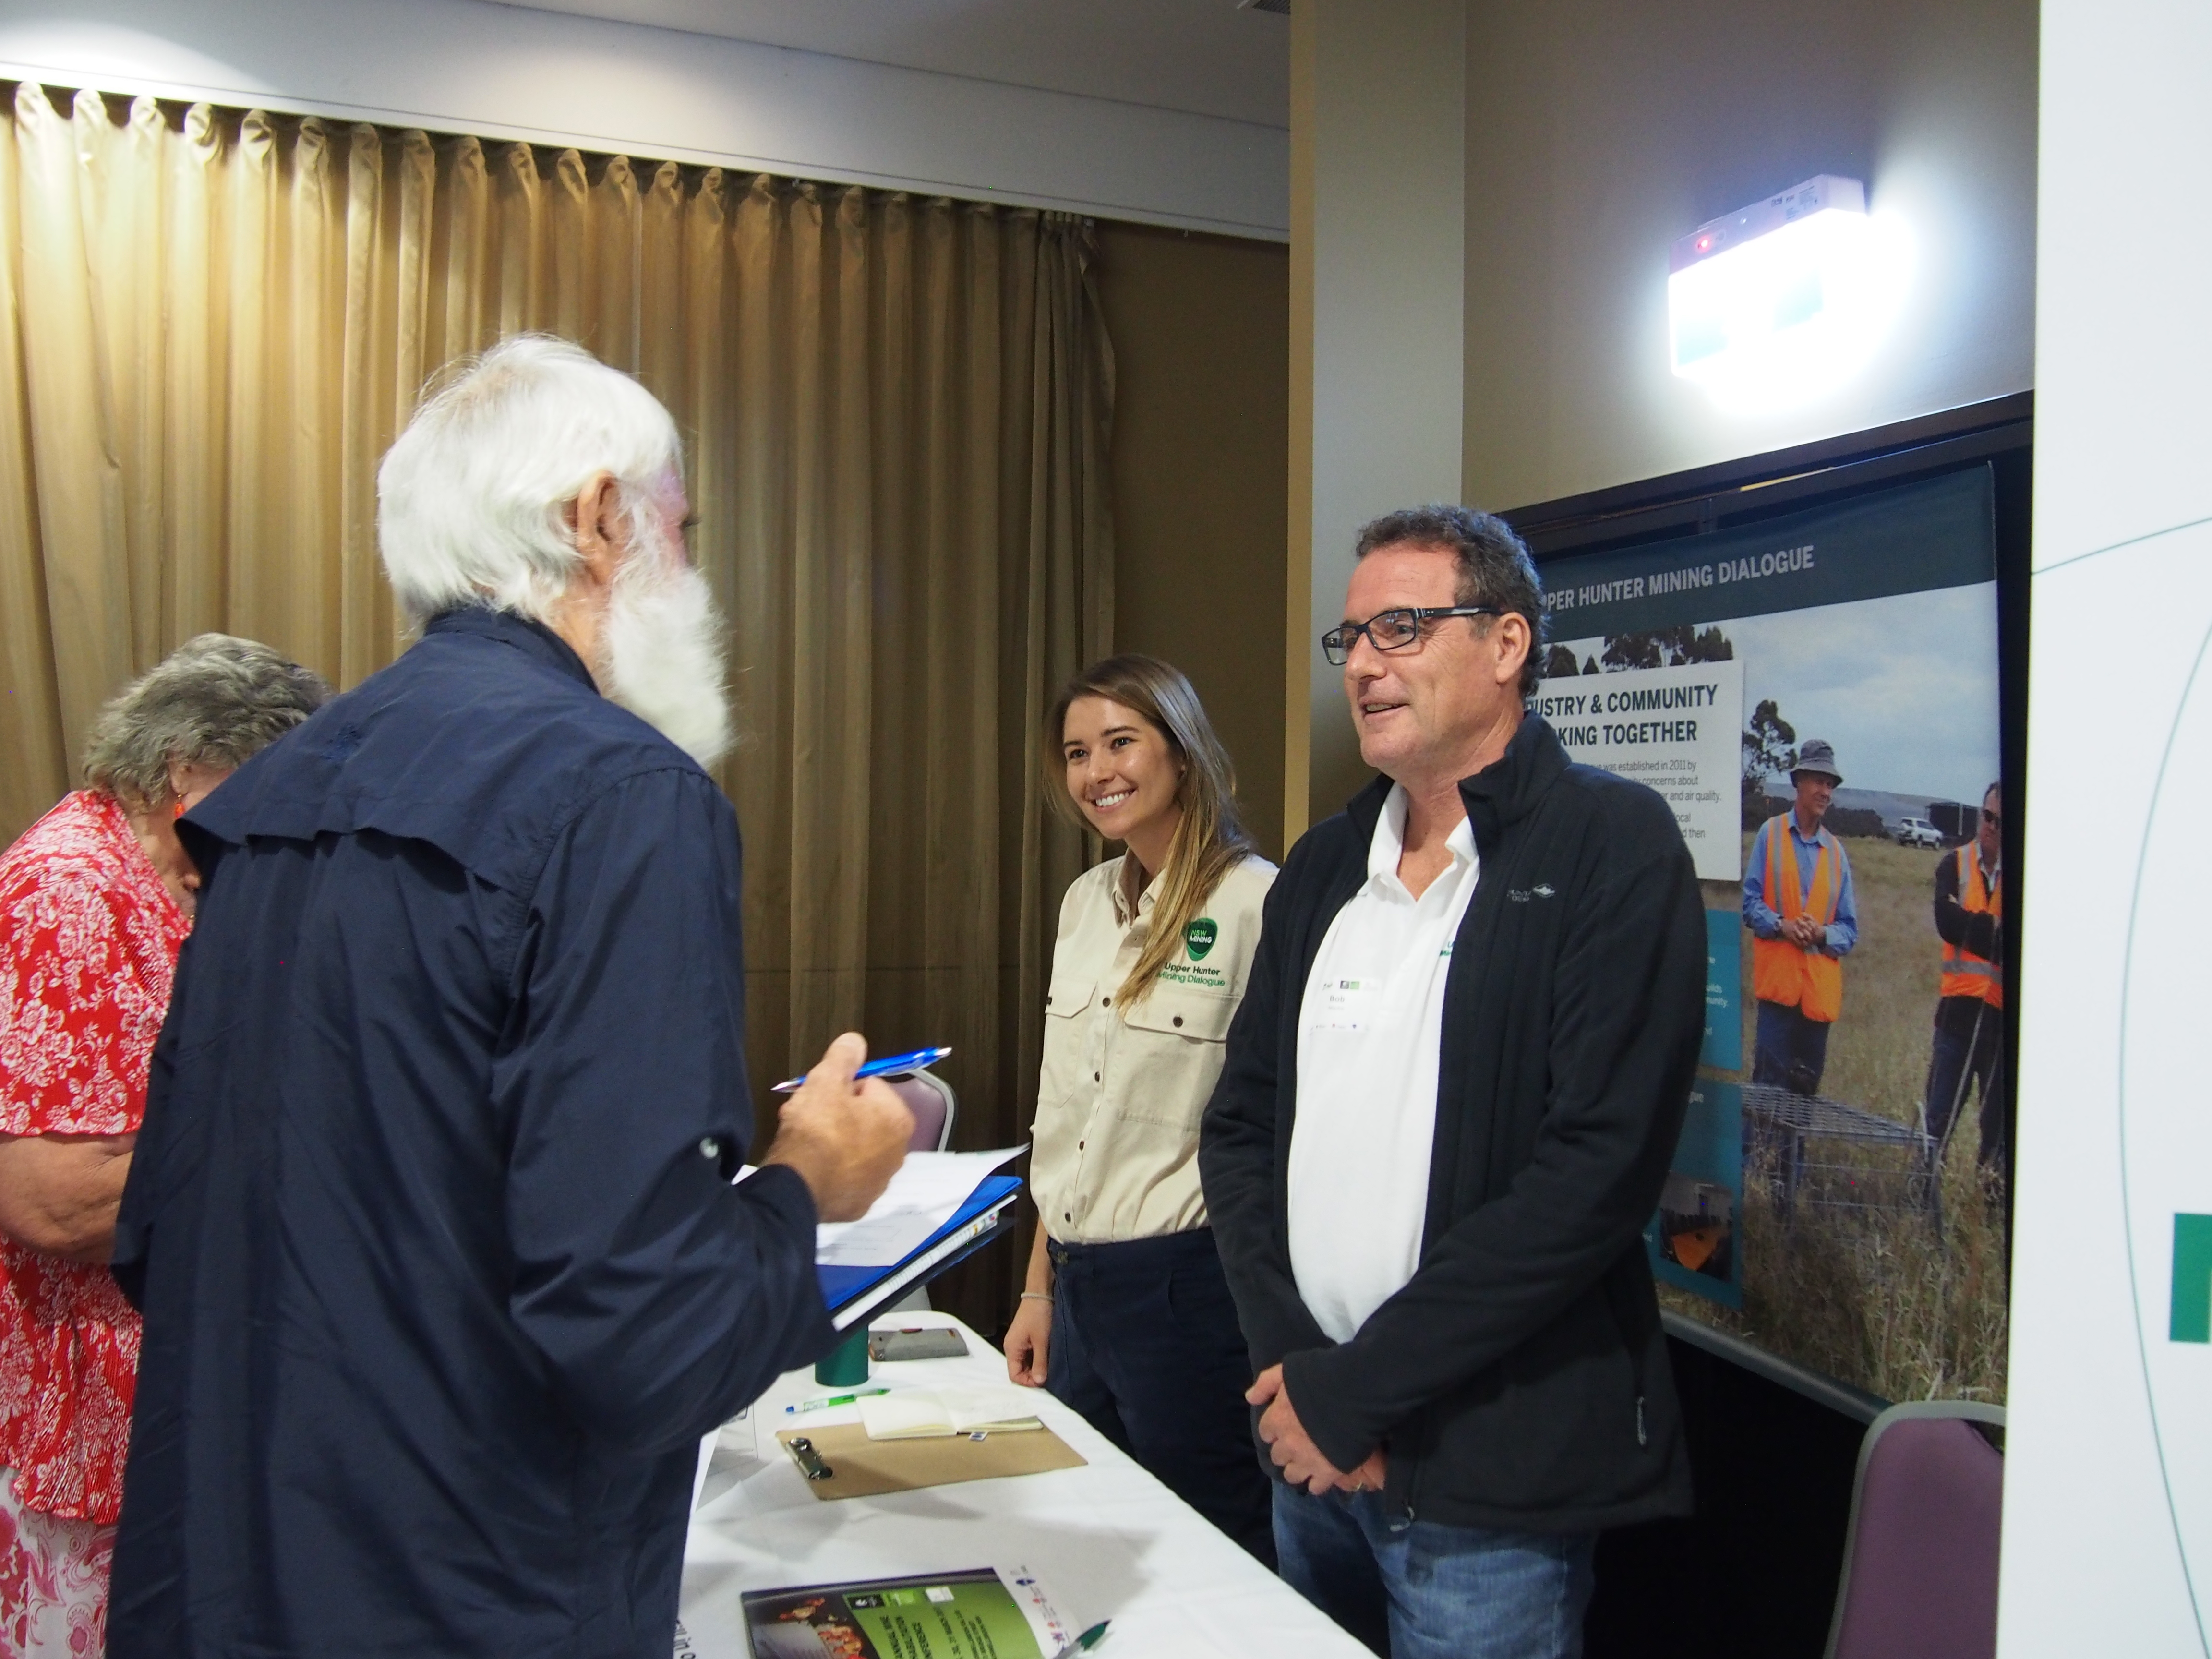 Sponsor NSW Mining, utilised their exhibitor space for Upper Hunter Mining Dialogue